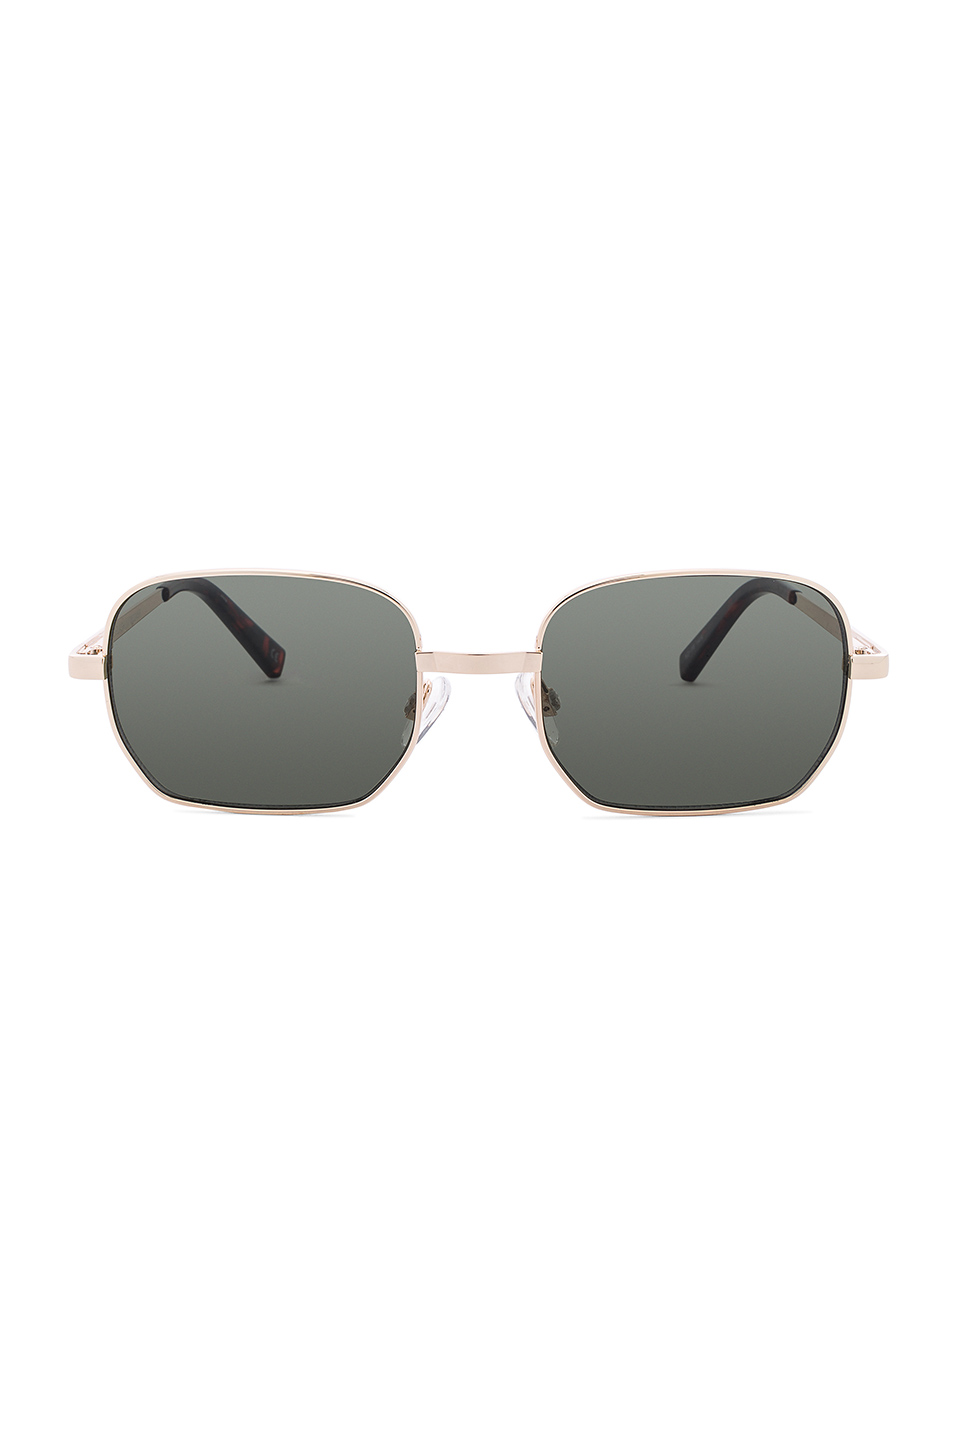 The Flash Sunglasses by Le Specs, available on revolve.com Hailey Baldwin Sunglasses Exact Product